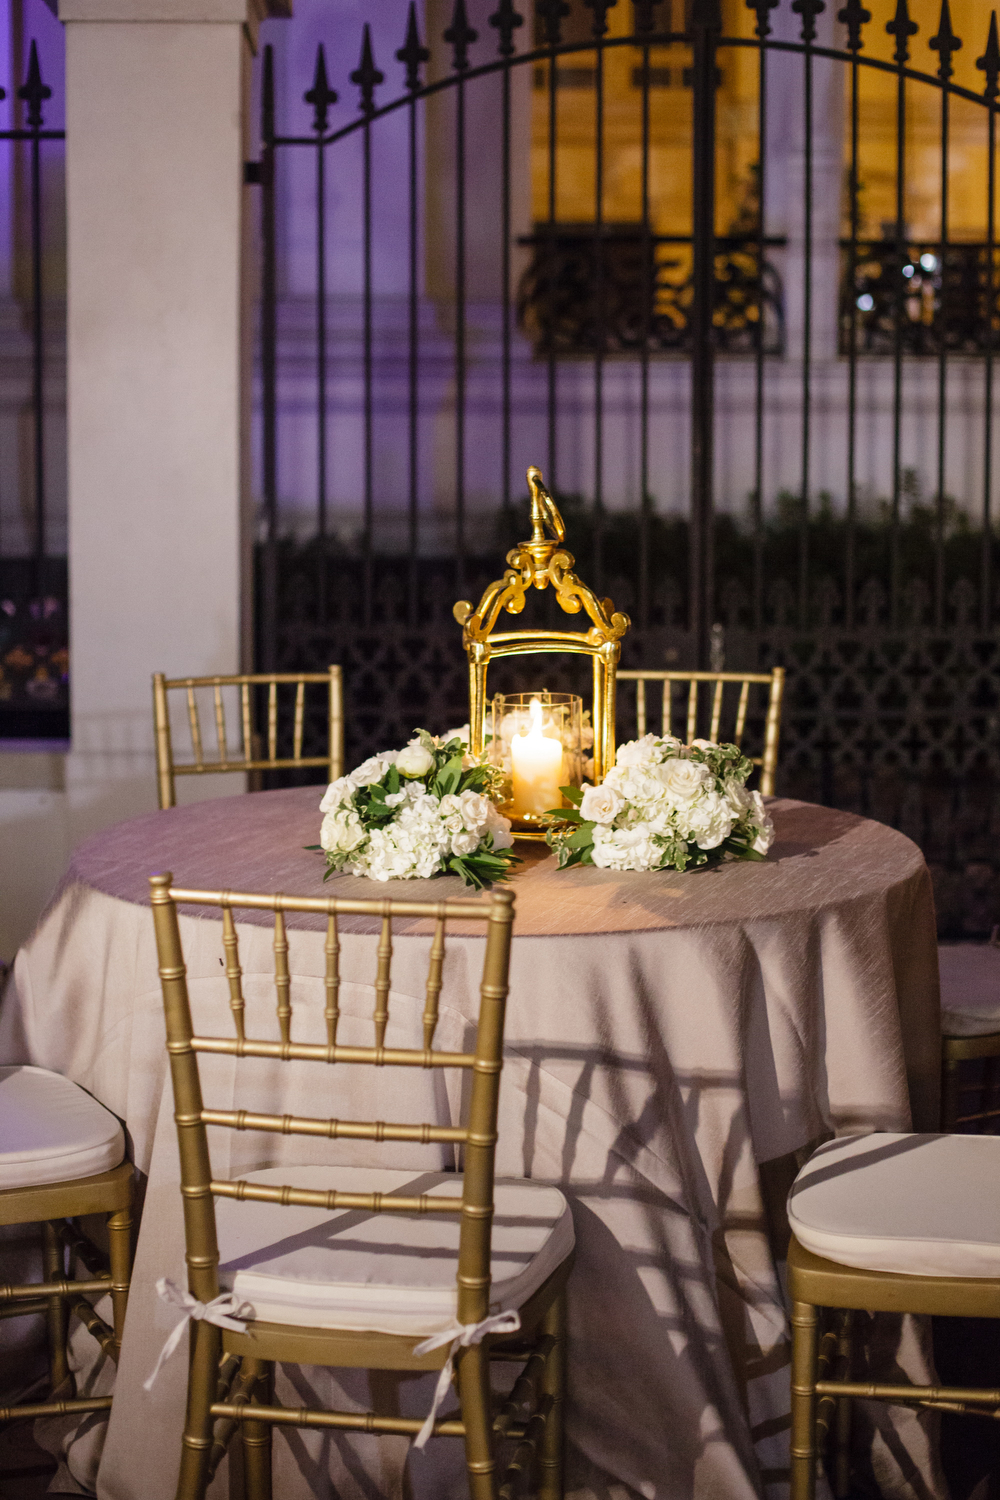 white hydrangea flowers on a table with golden lanterns in an outdoor courtyard wedding reception at night